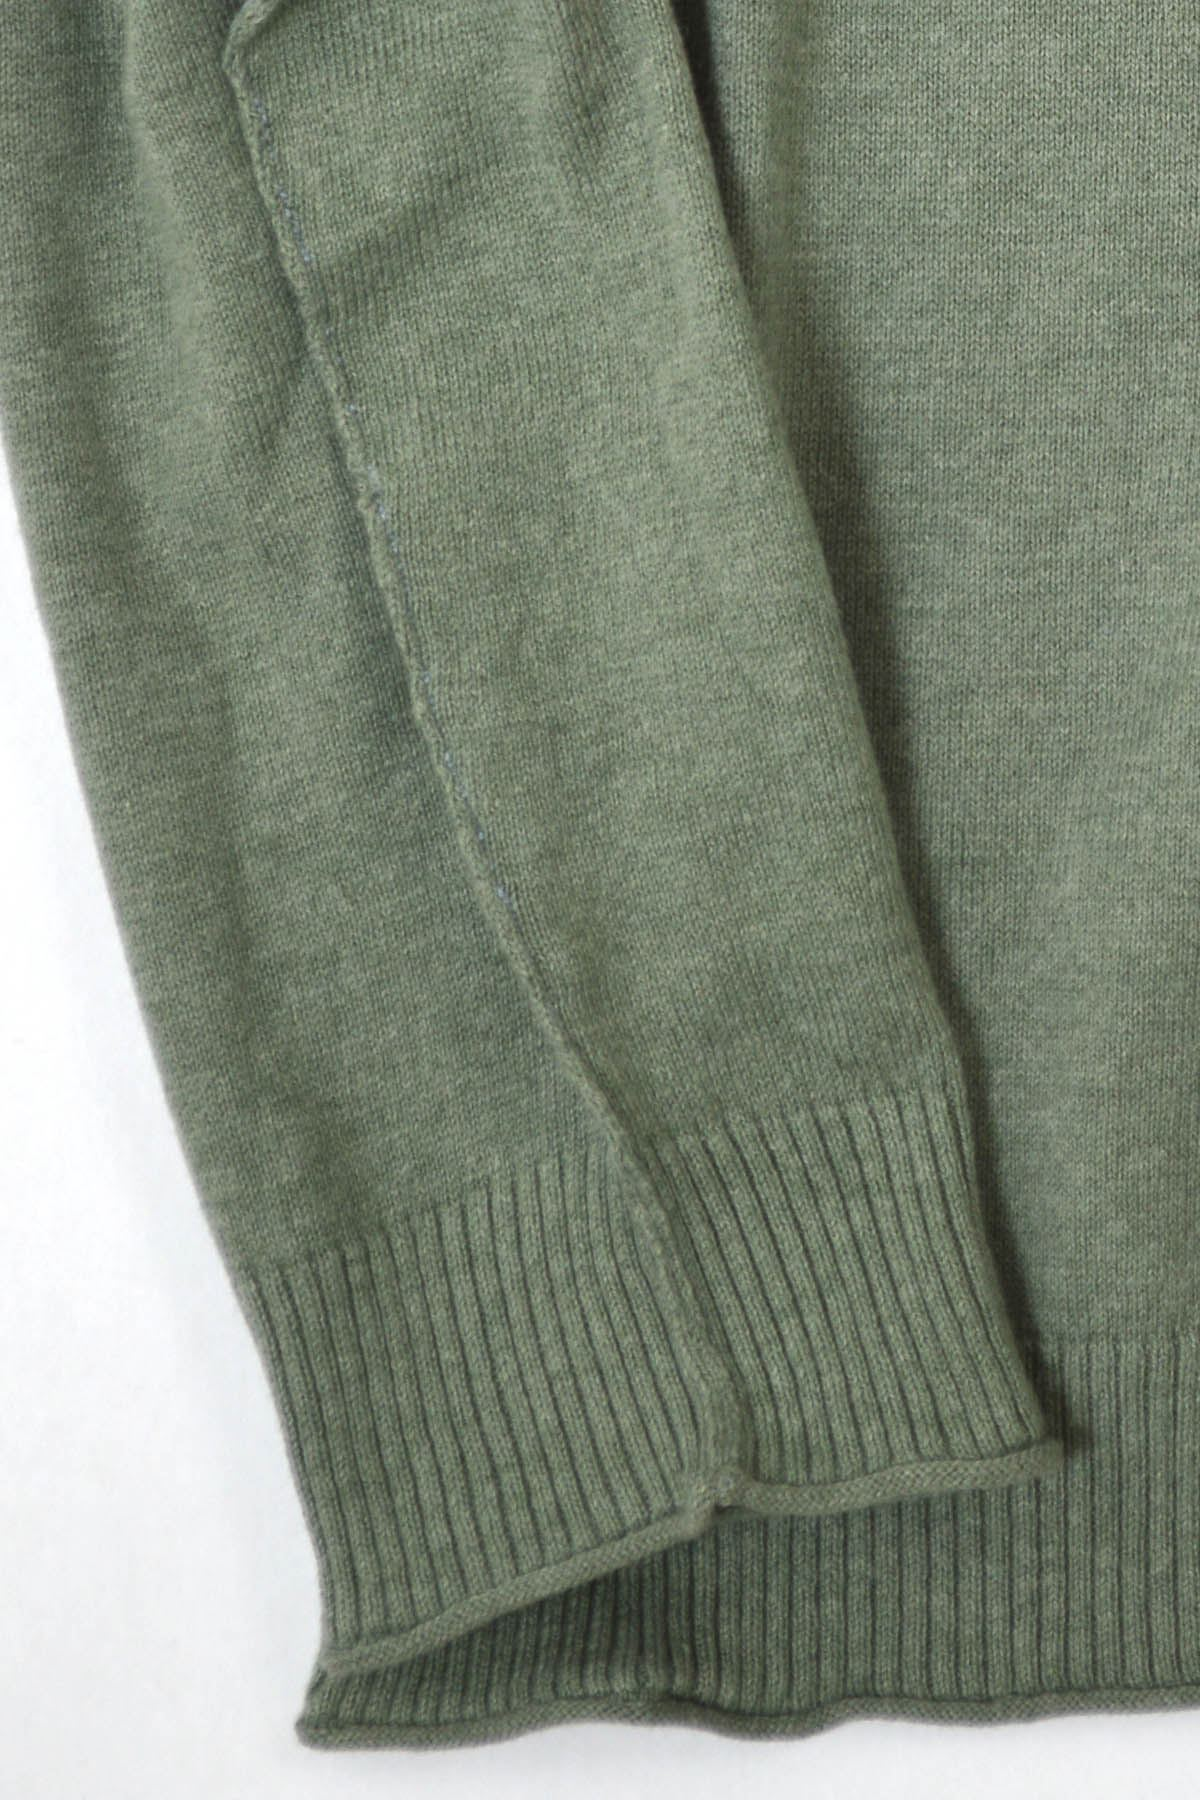 Ex-White-Stuff-Mens-Soft-Cotton-Cashmere-V-Neck-Jumper-Exposed-Seams-Sizes-S-2XL 縮圖 15